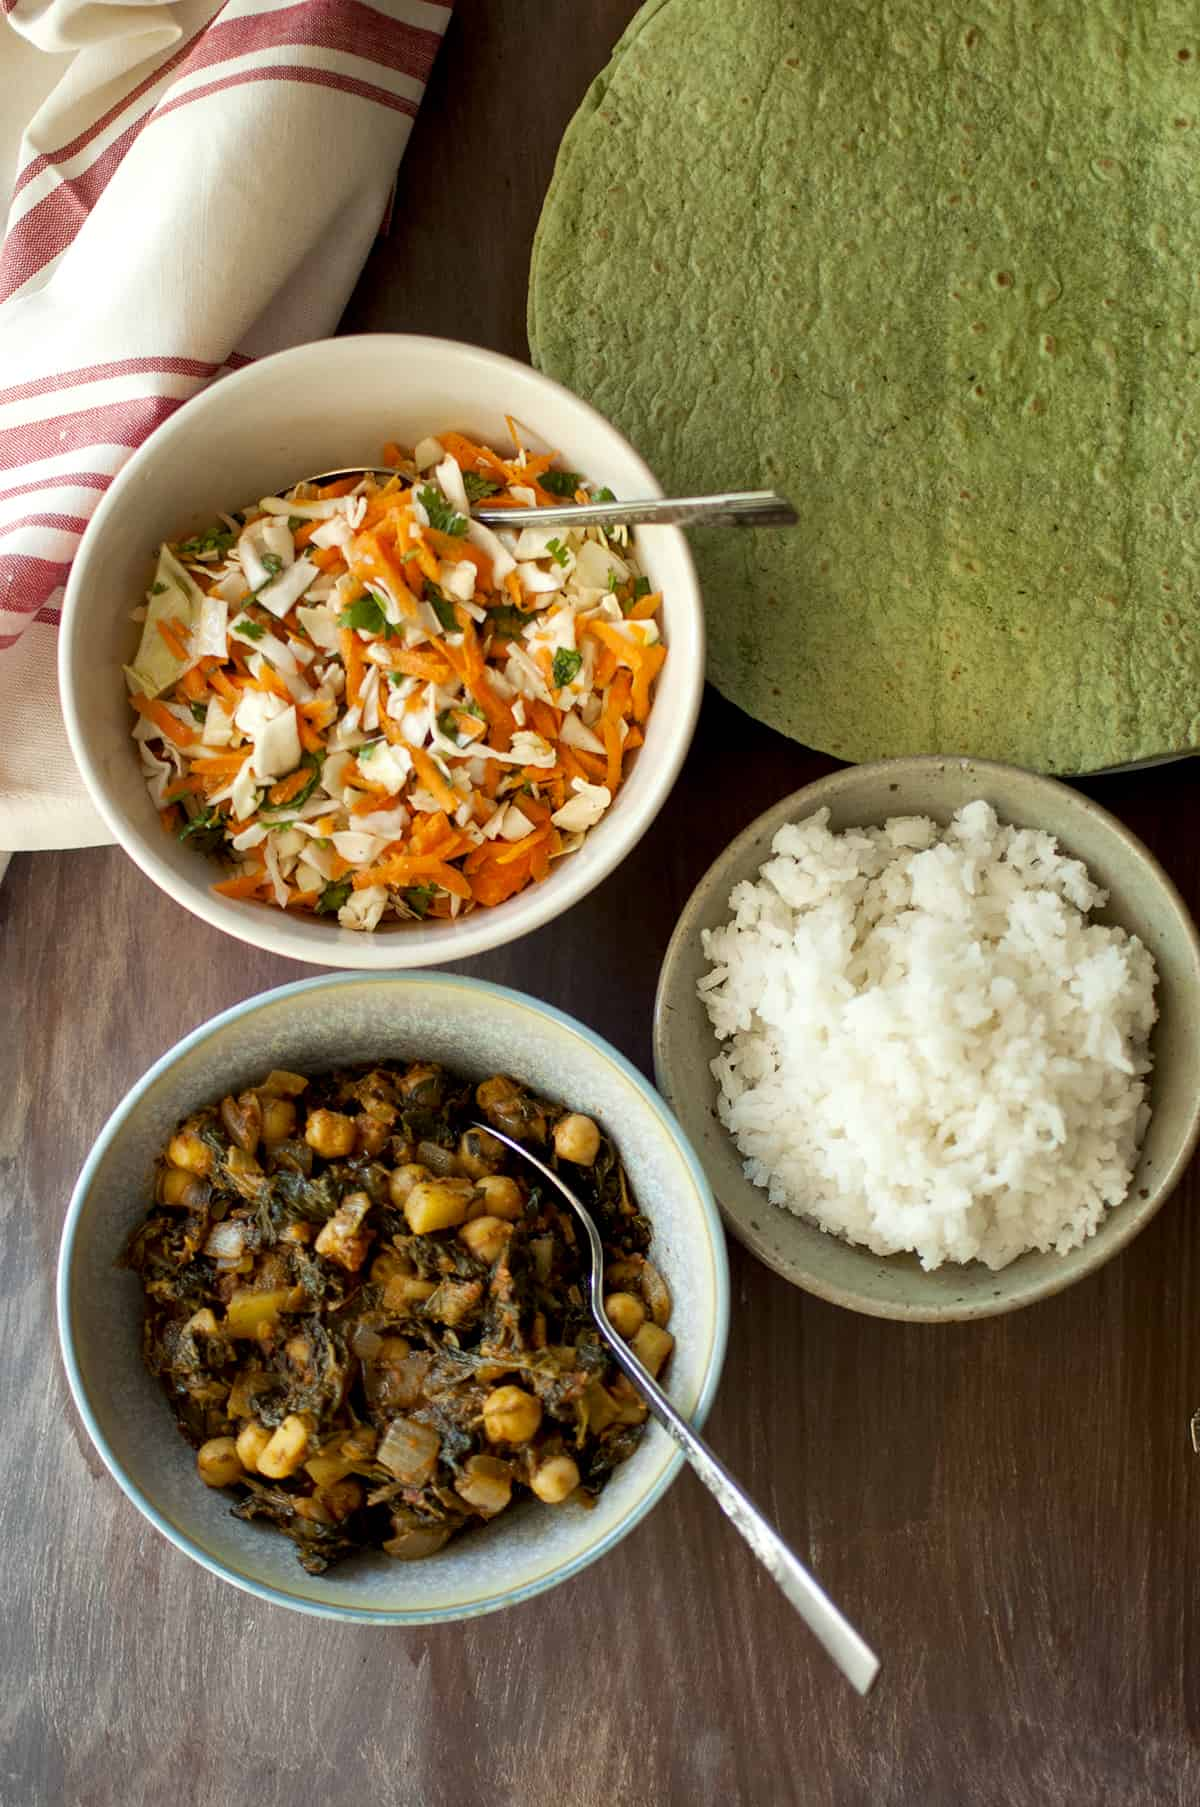 Ingredients needed - spinach tortillas, coleslaw, chickpea-spinach curry and white rice